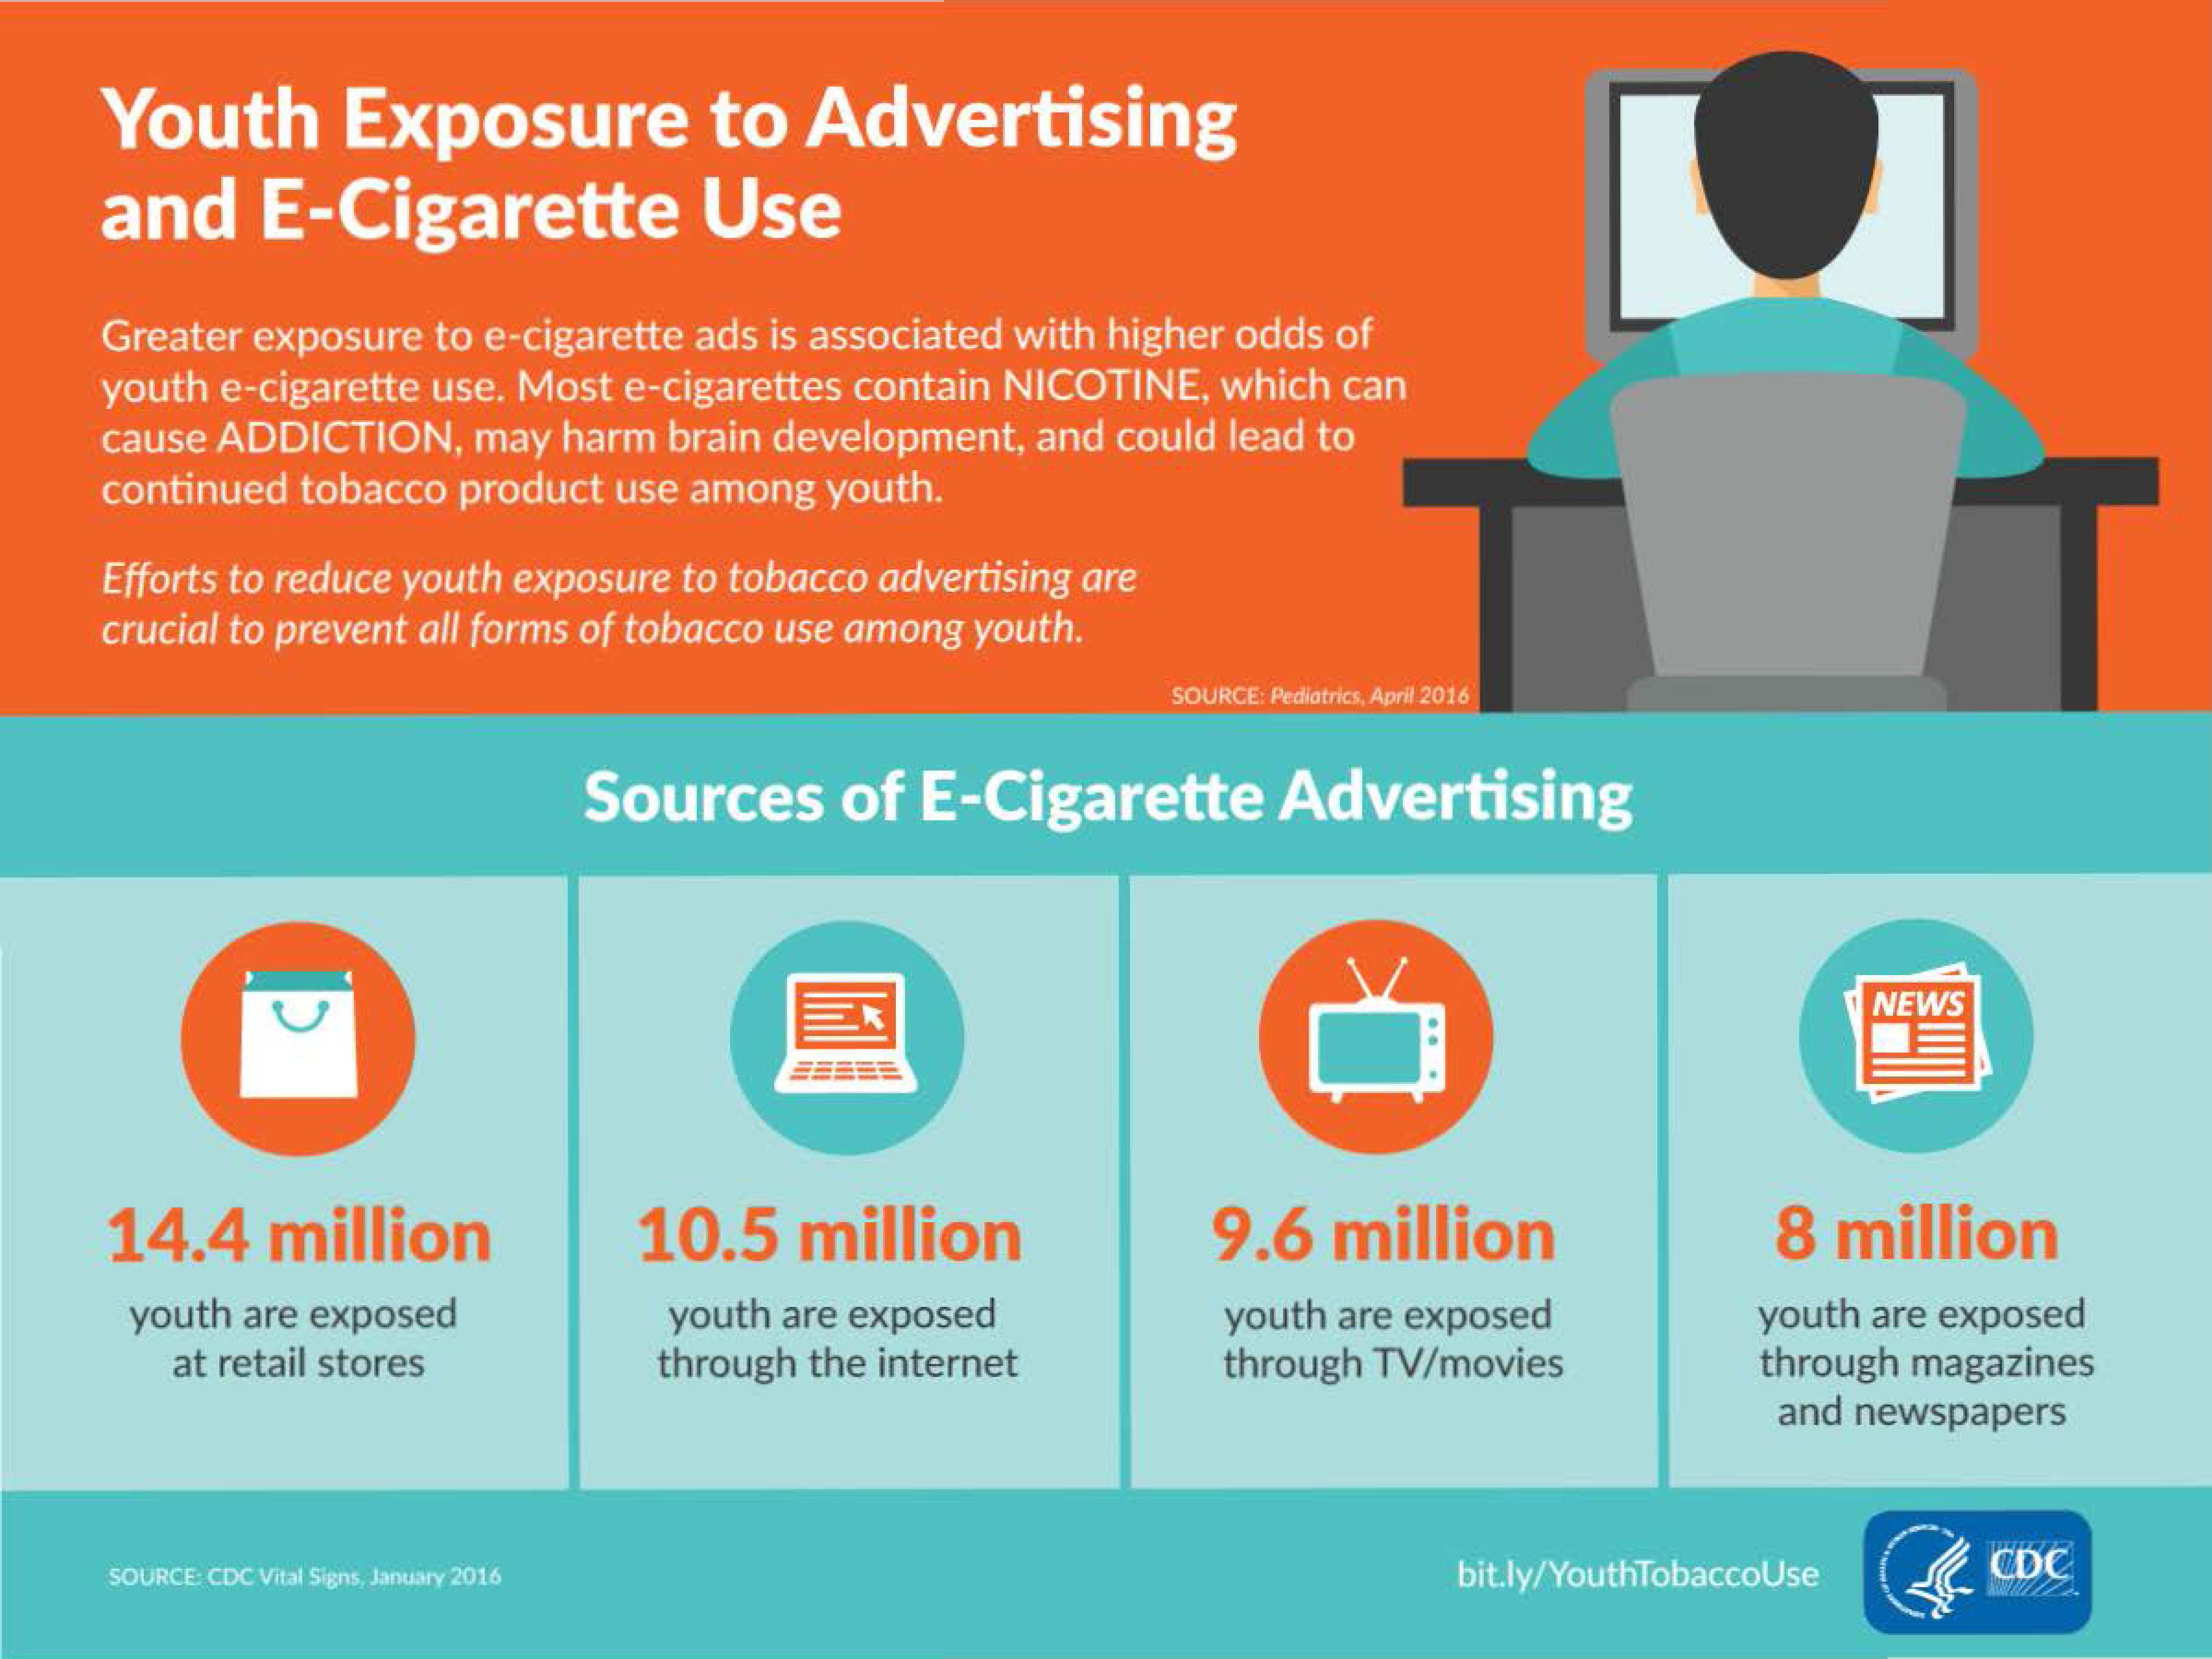 Youth Exposure to Advertising and E-Cigarette Use